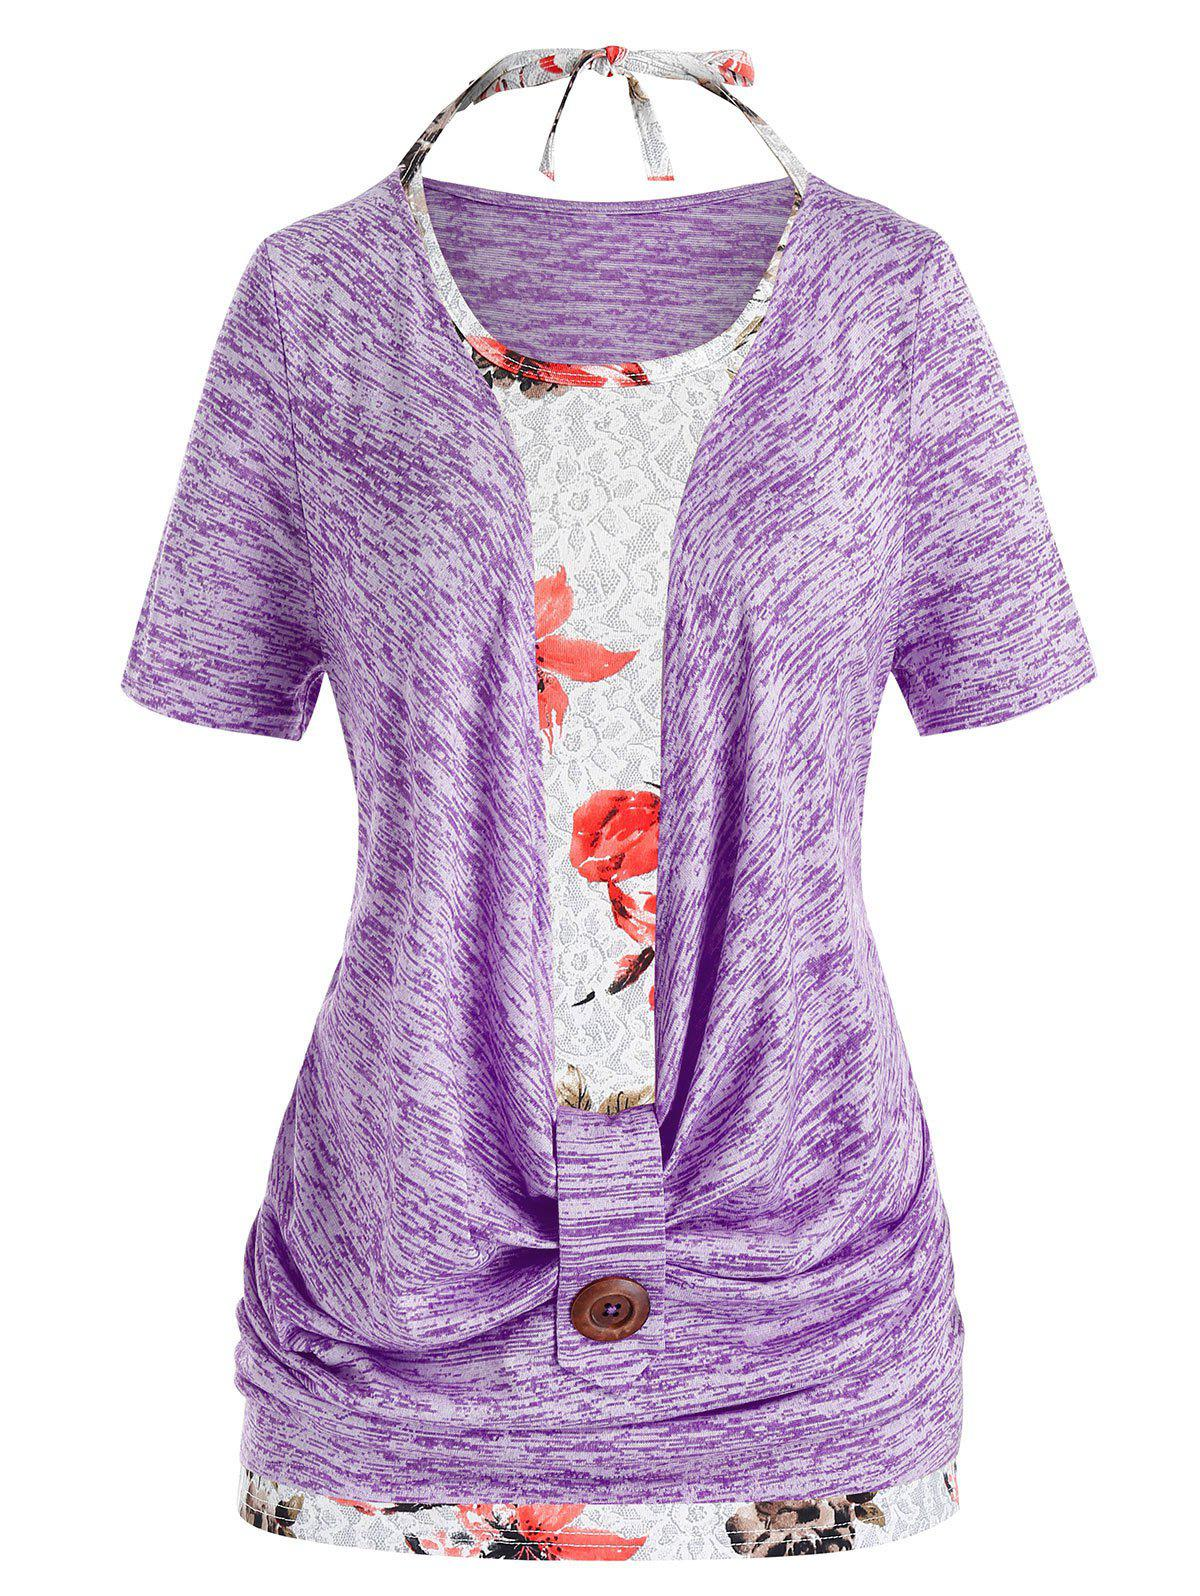 Plus Size Cowl Front Marled T Shirt And Halter Floral Tank Top Set - CROCUS PURPLE 5X